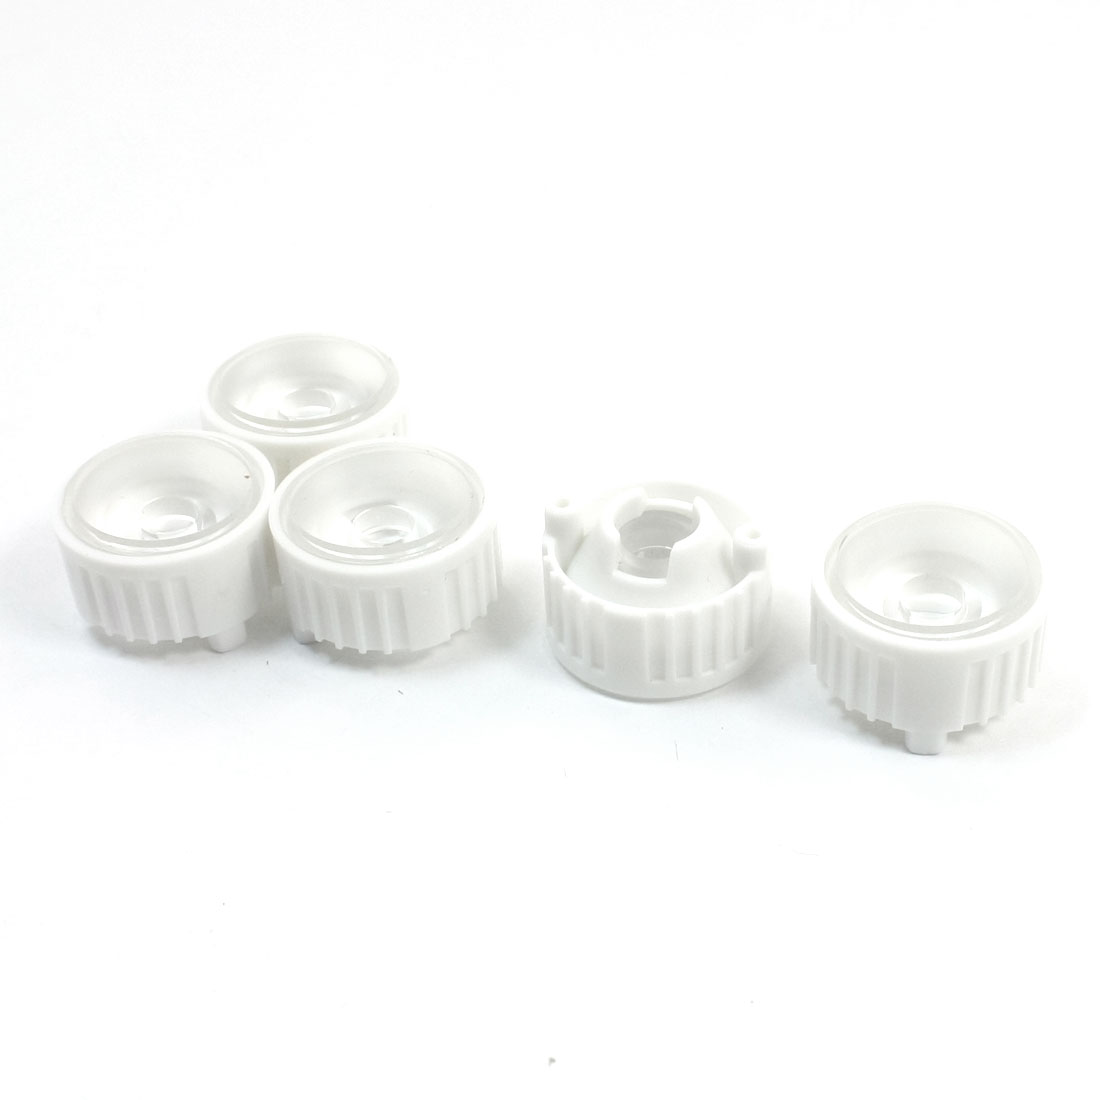 5Pcs High Power LED Optical Lens LEDs Collector Len 90 Degree 22x14mm